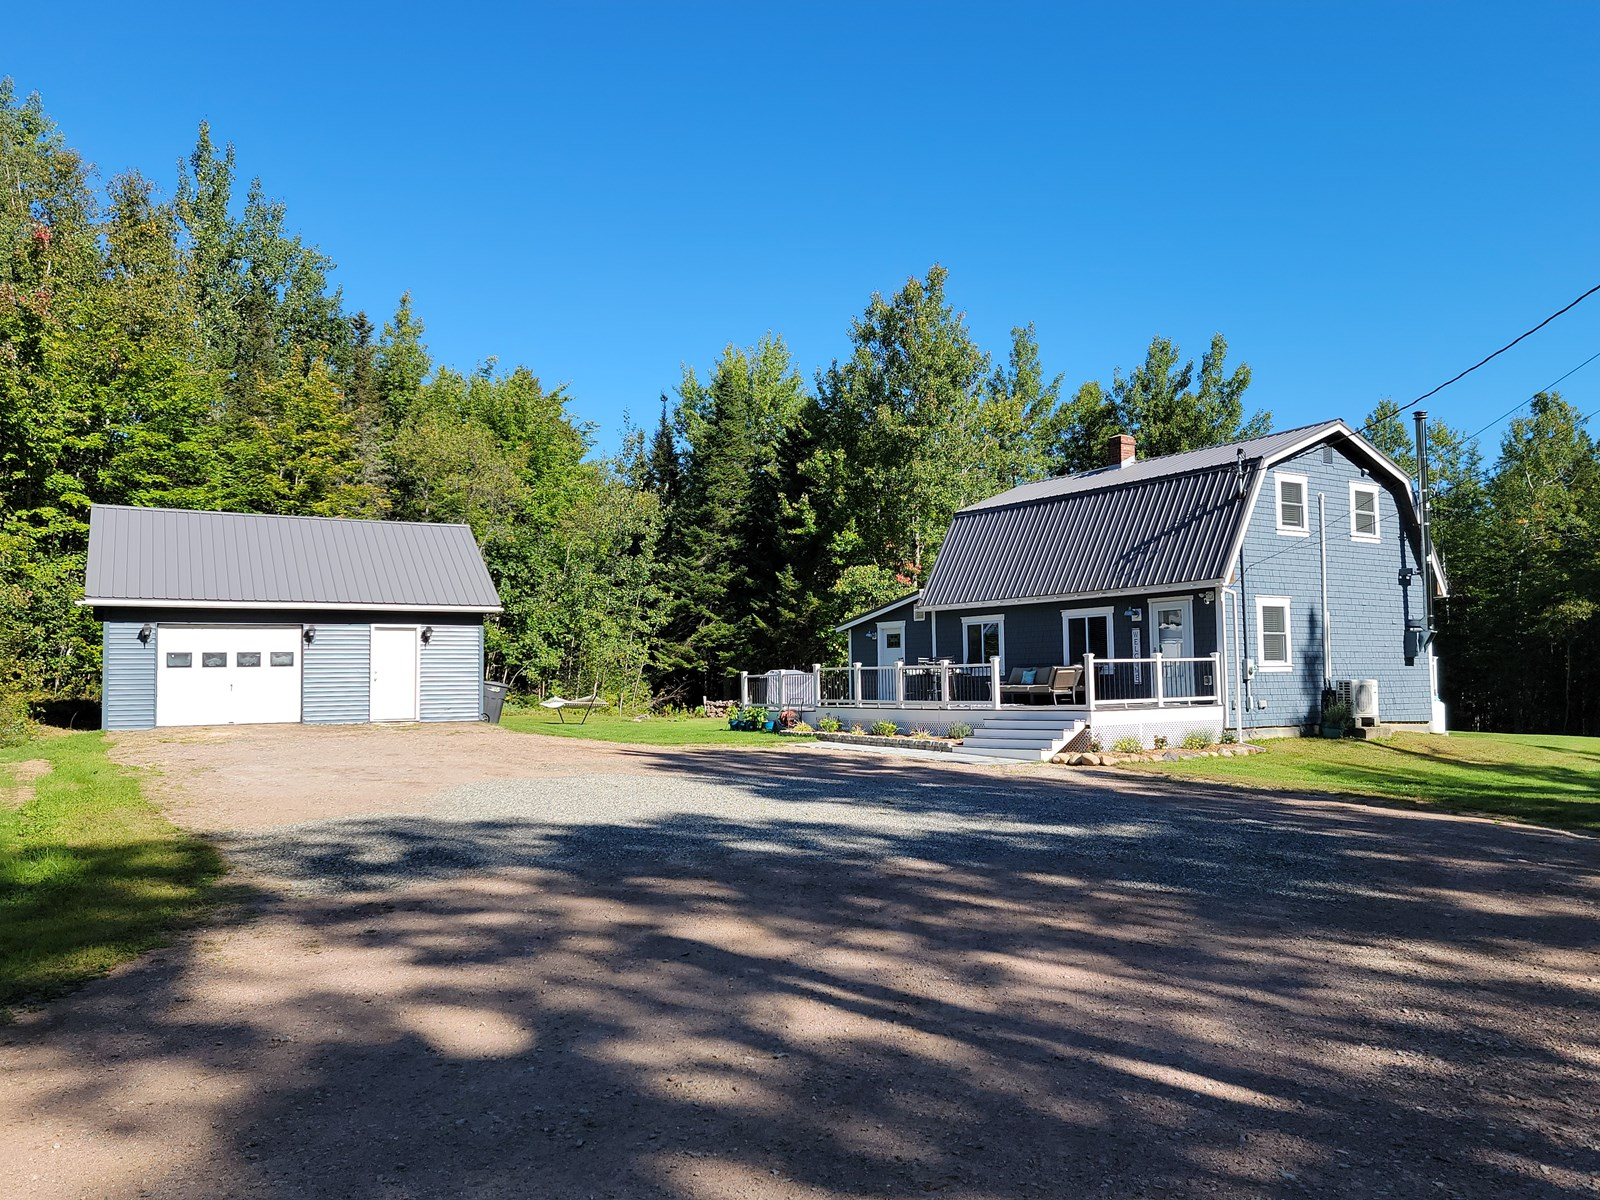 Newly updated home in Robbinston, Maine